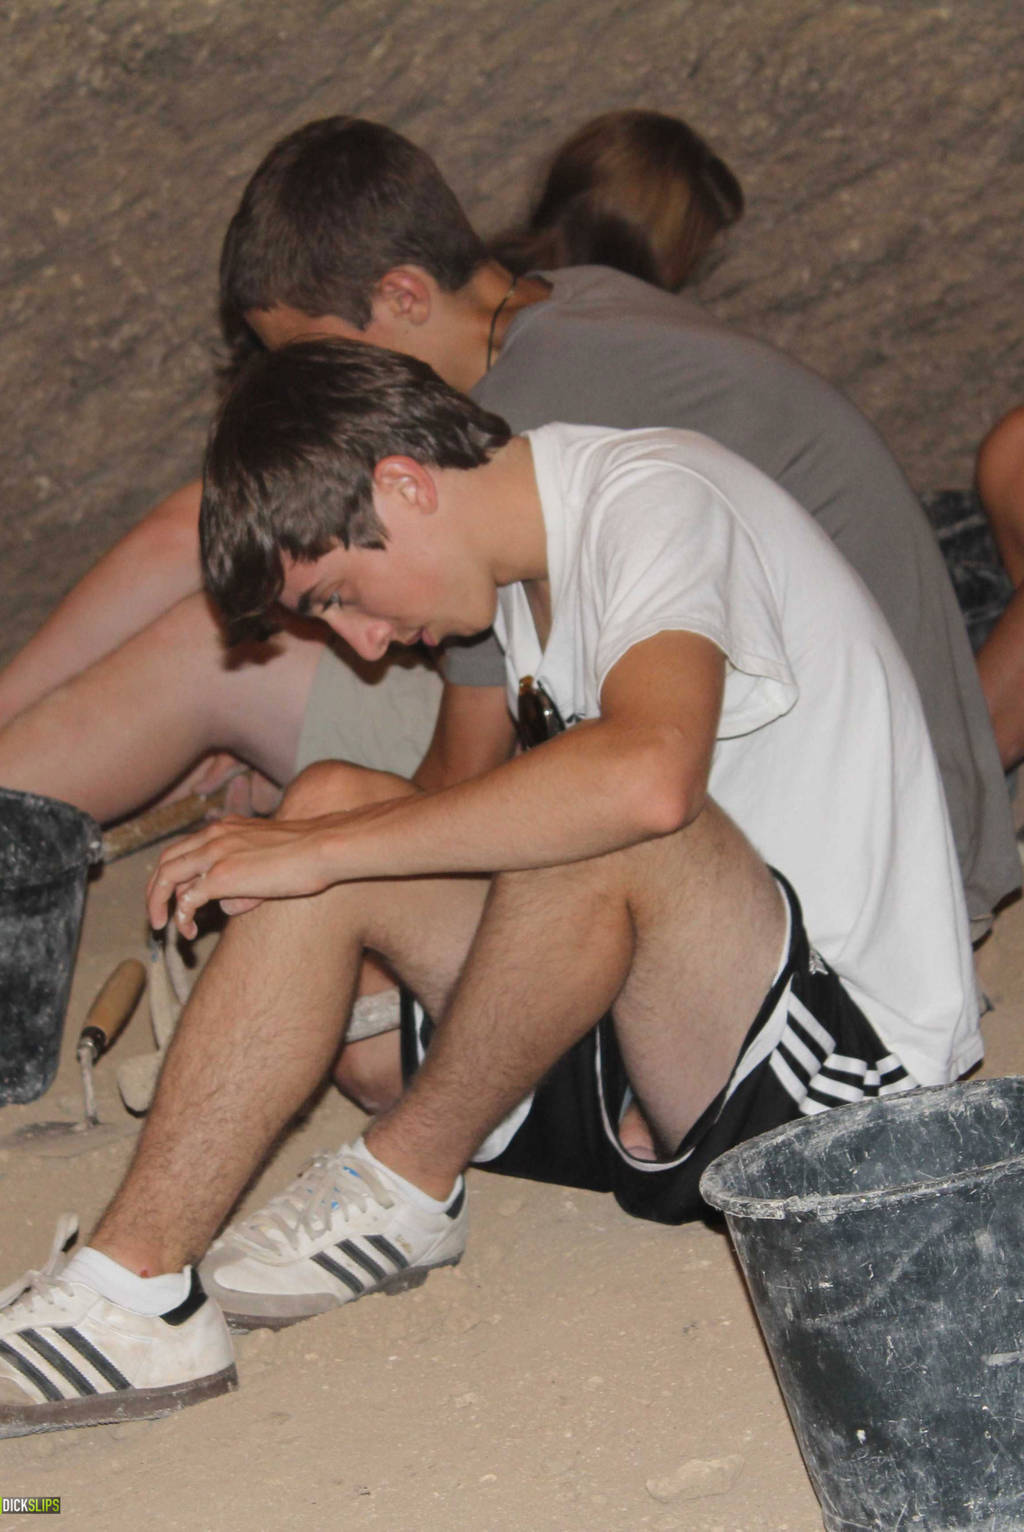 Dick Hanging Out Shorts photo 7